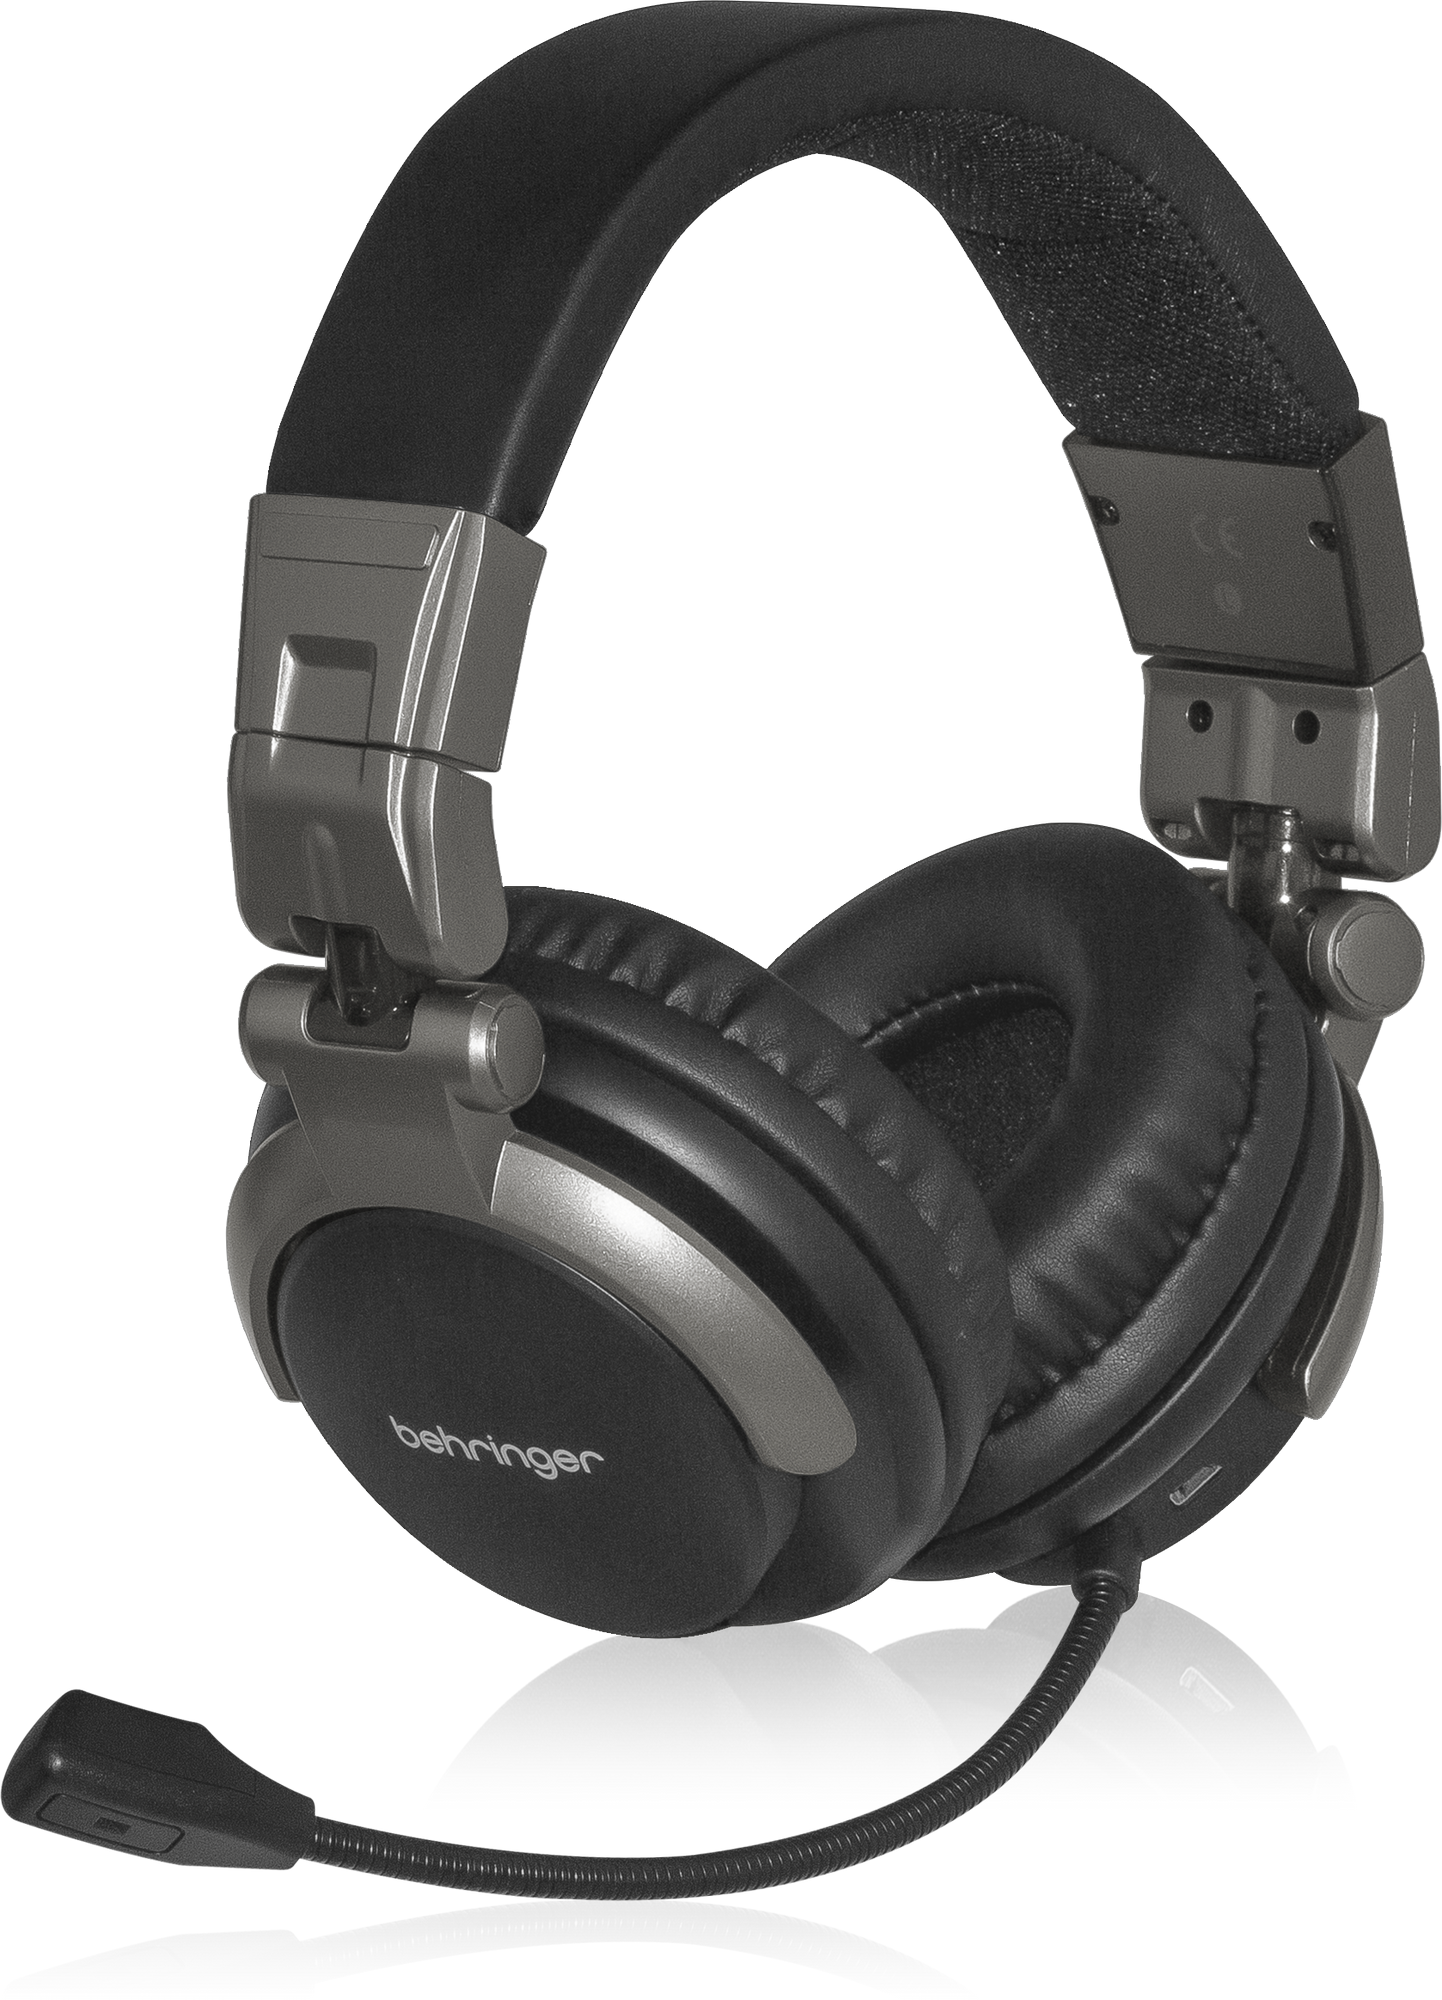 Behringer BB 560M - Headphone with microphone